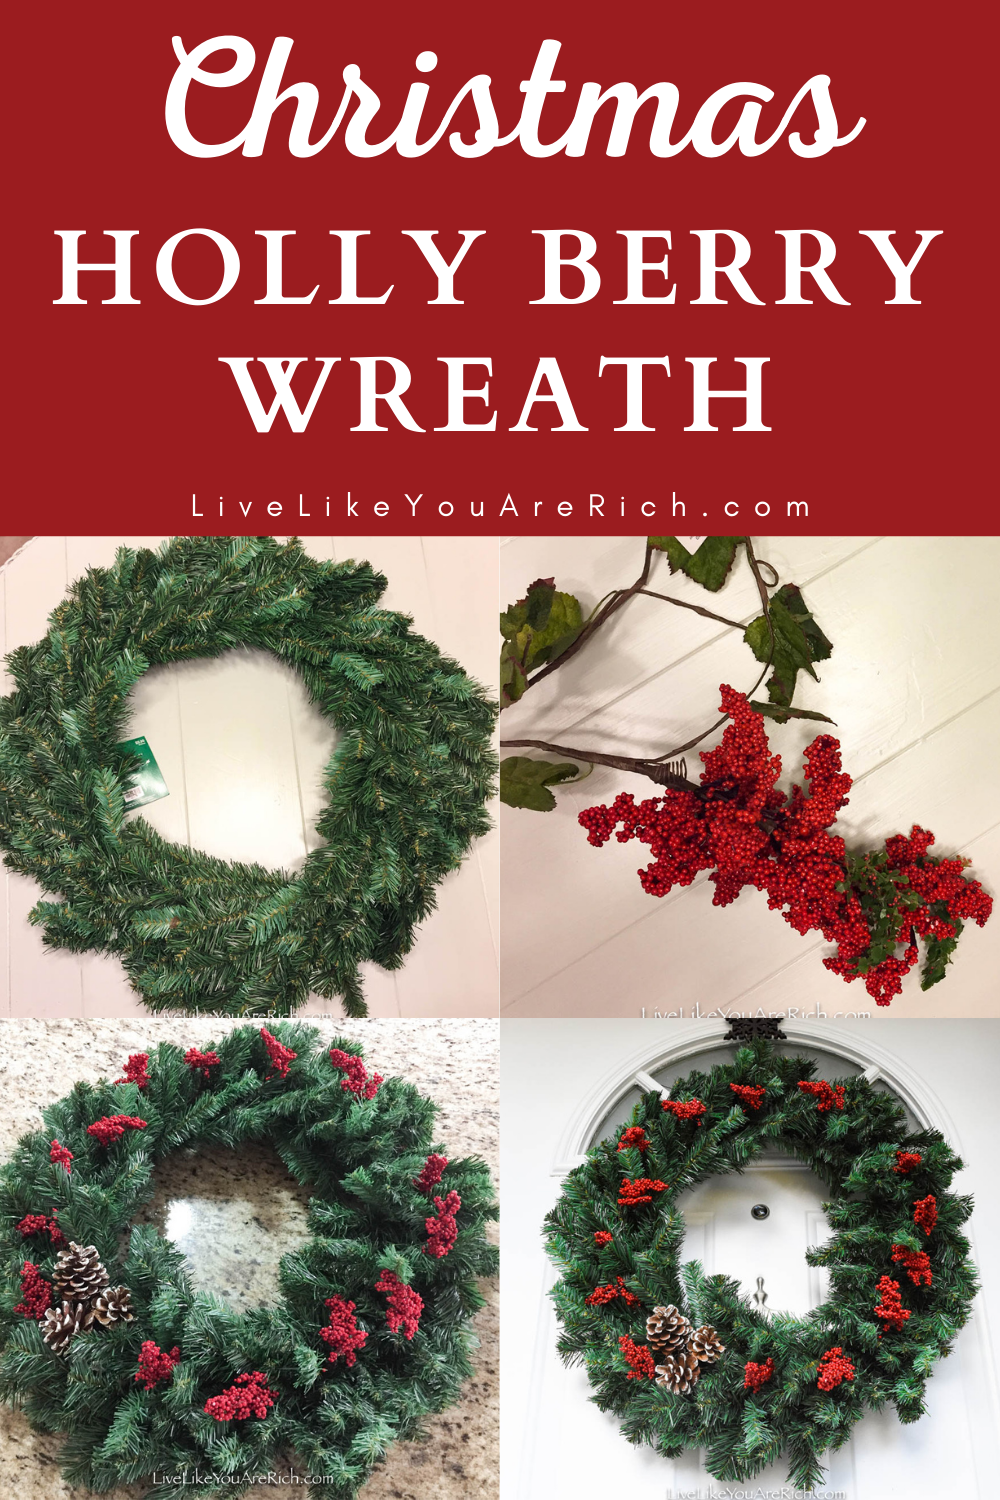 Winter is a wonderful time of the year. I love to see all of the wreaths, lights, and holiday decor people have or make. Making Christmas wreaths is something I really enjoy. Yet, because Christmas is such a busy and expensive time of the year, I usually like to keep the wreaths I make simple, Inexpensive, and quick. This Christmas Holly Berry Wreath is simple and inexpensive. It cost only $10.00 and took less than 10 minutes to make. #christmas #christmaswreath